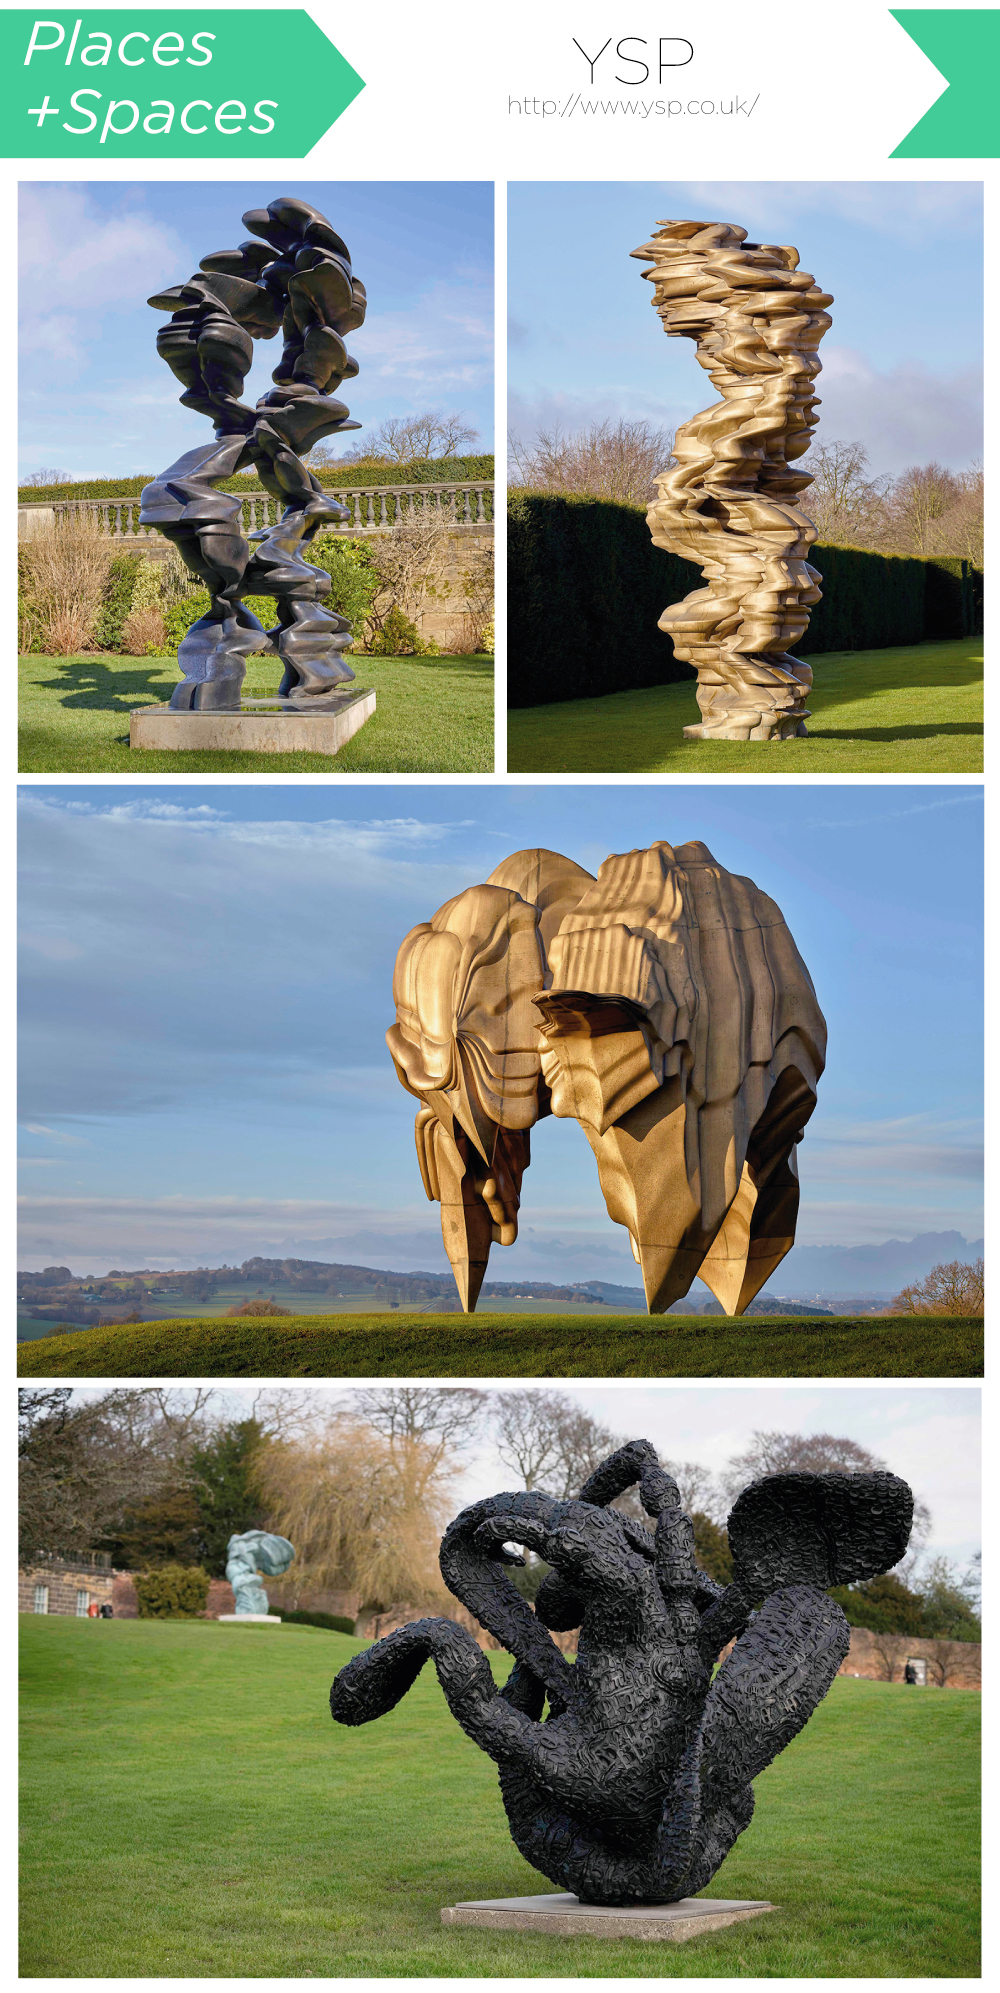 Images sourced: http://www.wallpaper.com/art/tony-cragg-a-rare-category-of-objects-yorkshire-sculpture-park#191056